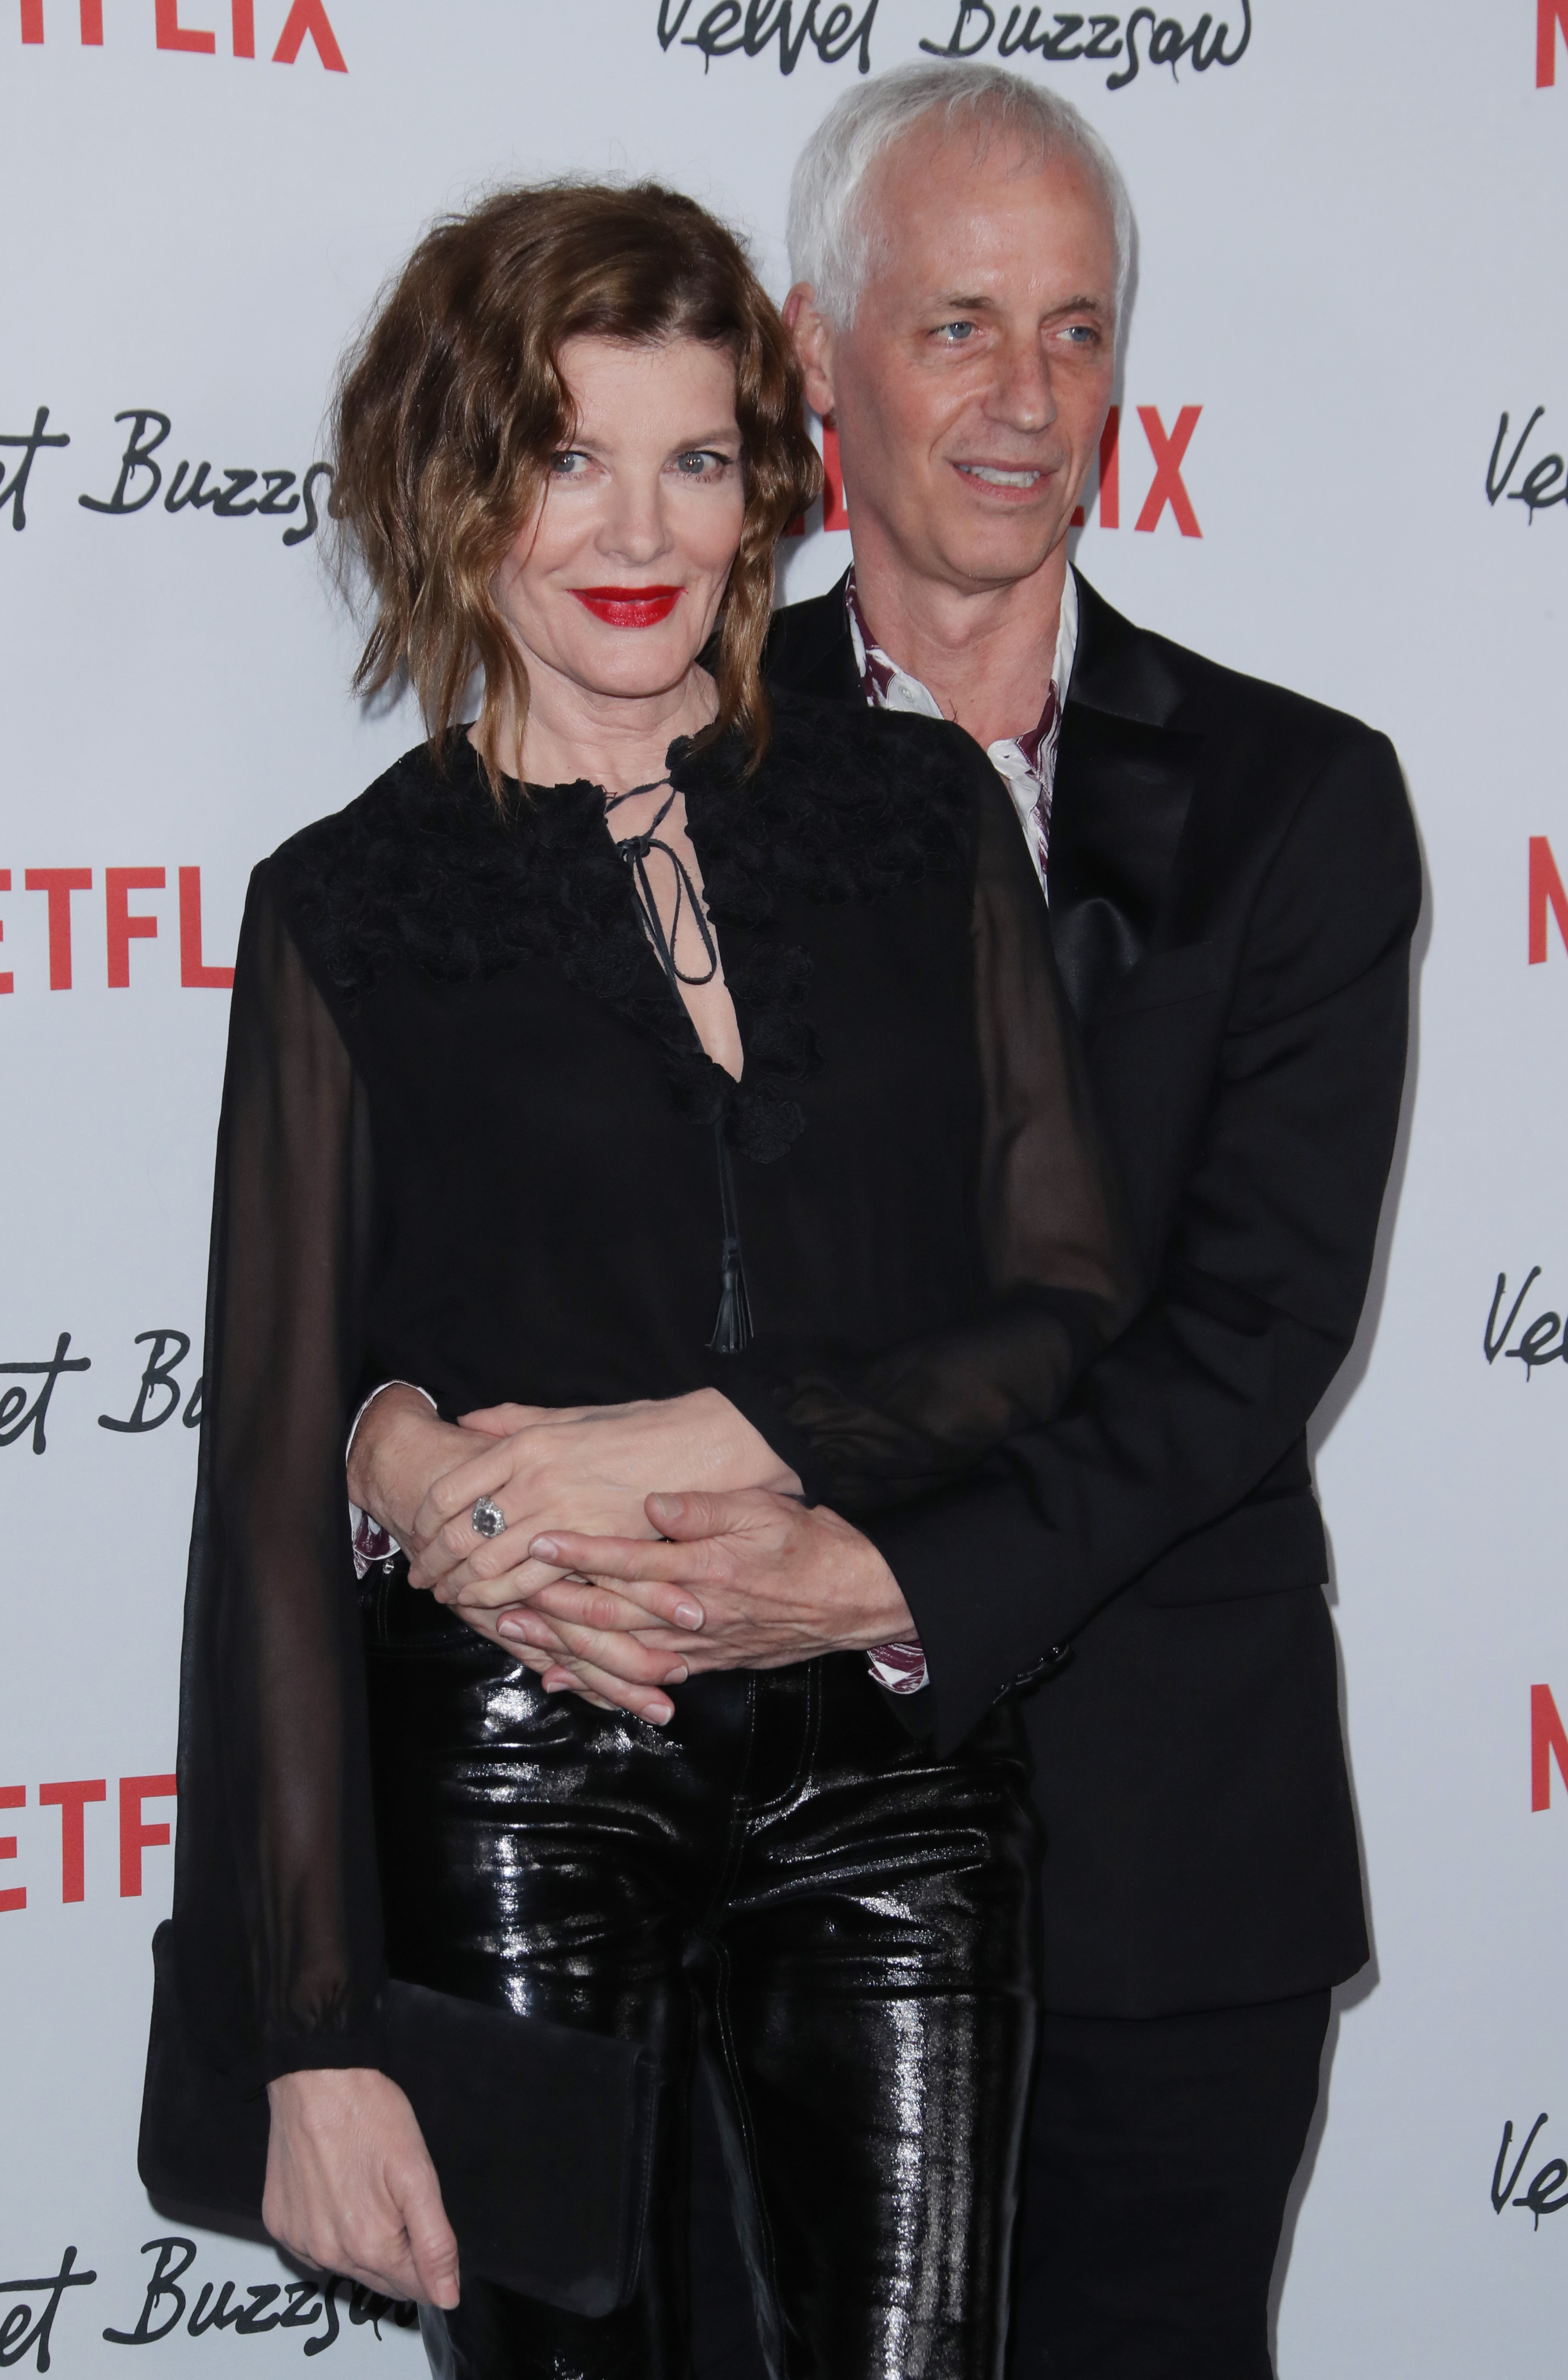 Rene Russo and Dan Gilroy'Velvet Buzzsaw' film premiere, Arrivals, The Egyptian Theatre, Los Angeles, USA - 28 Jan 2019